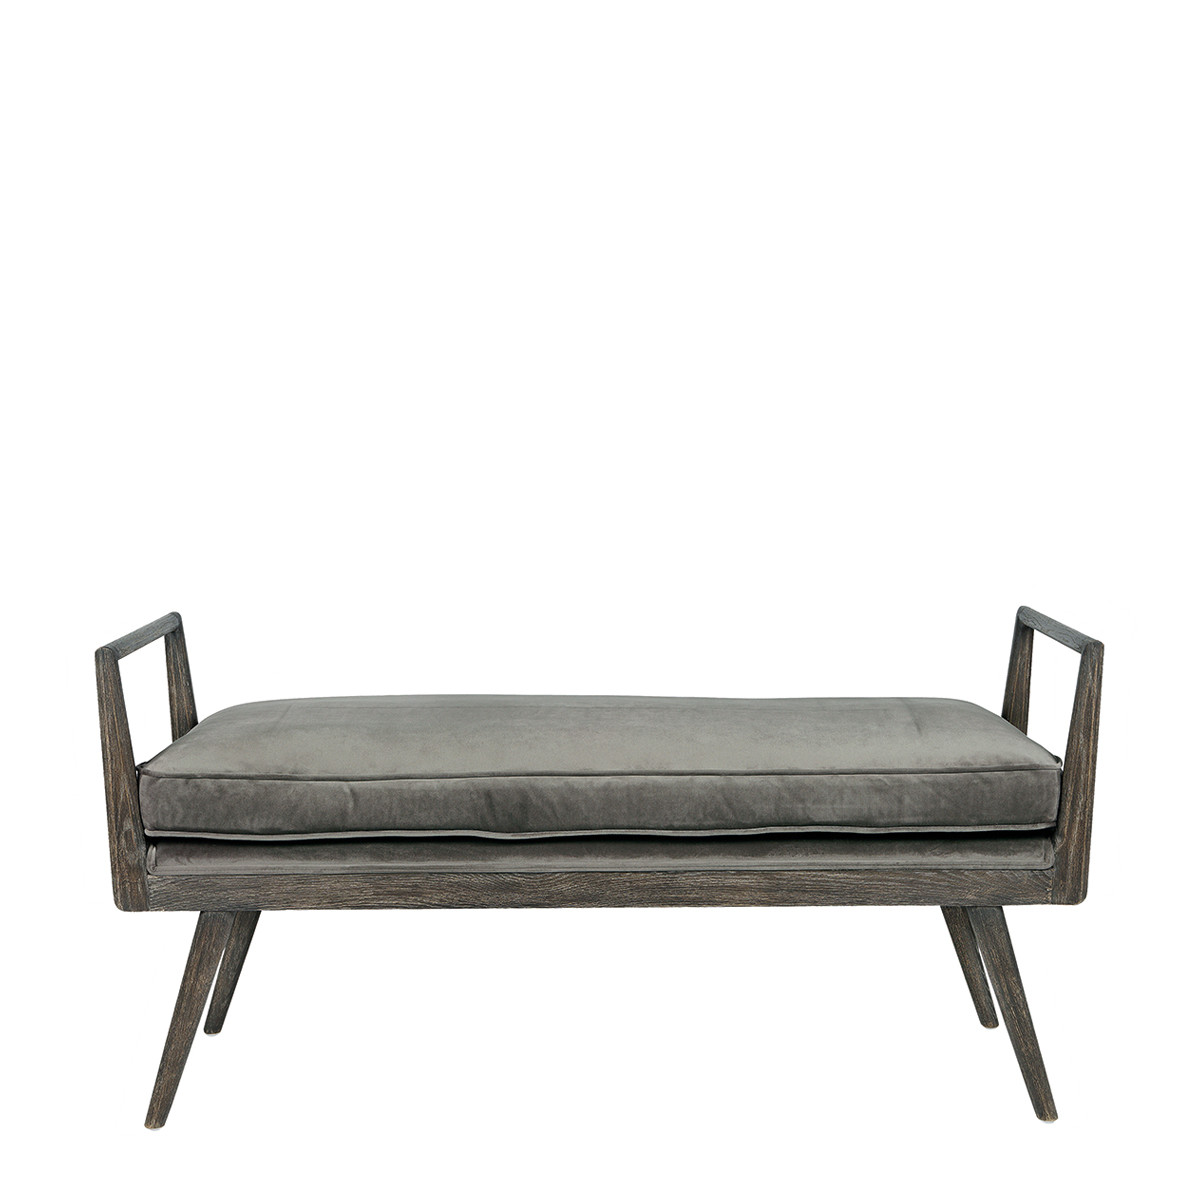 YVES UPHOLSTERED SEAT BENCH